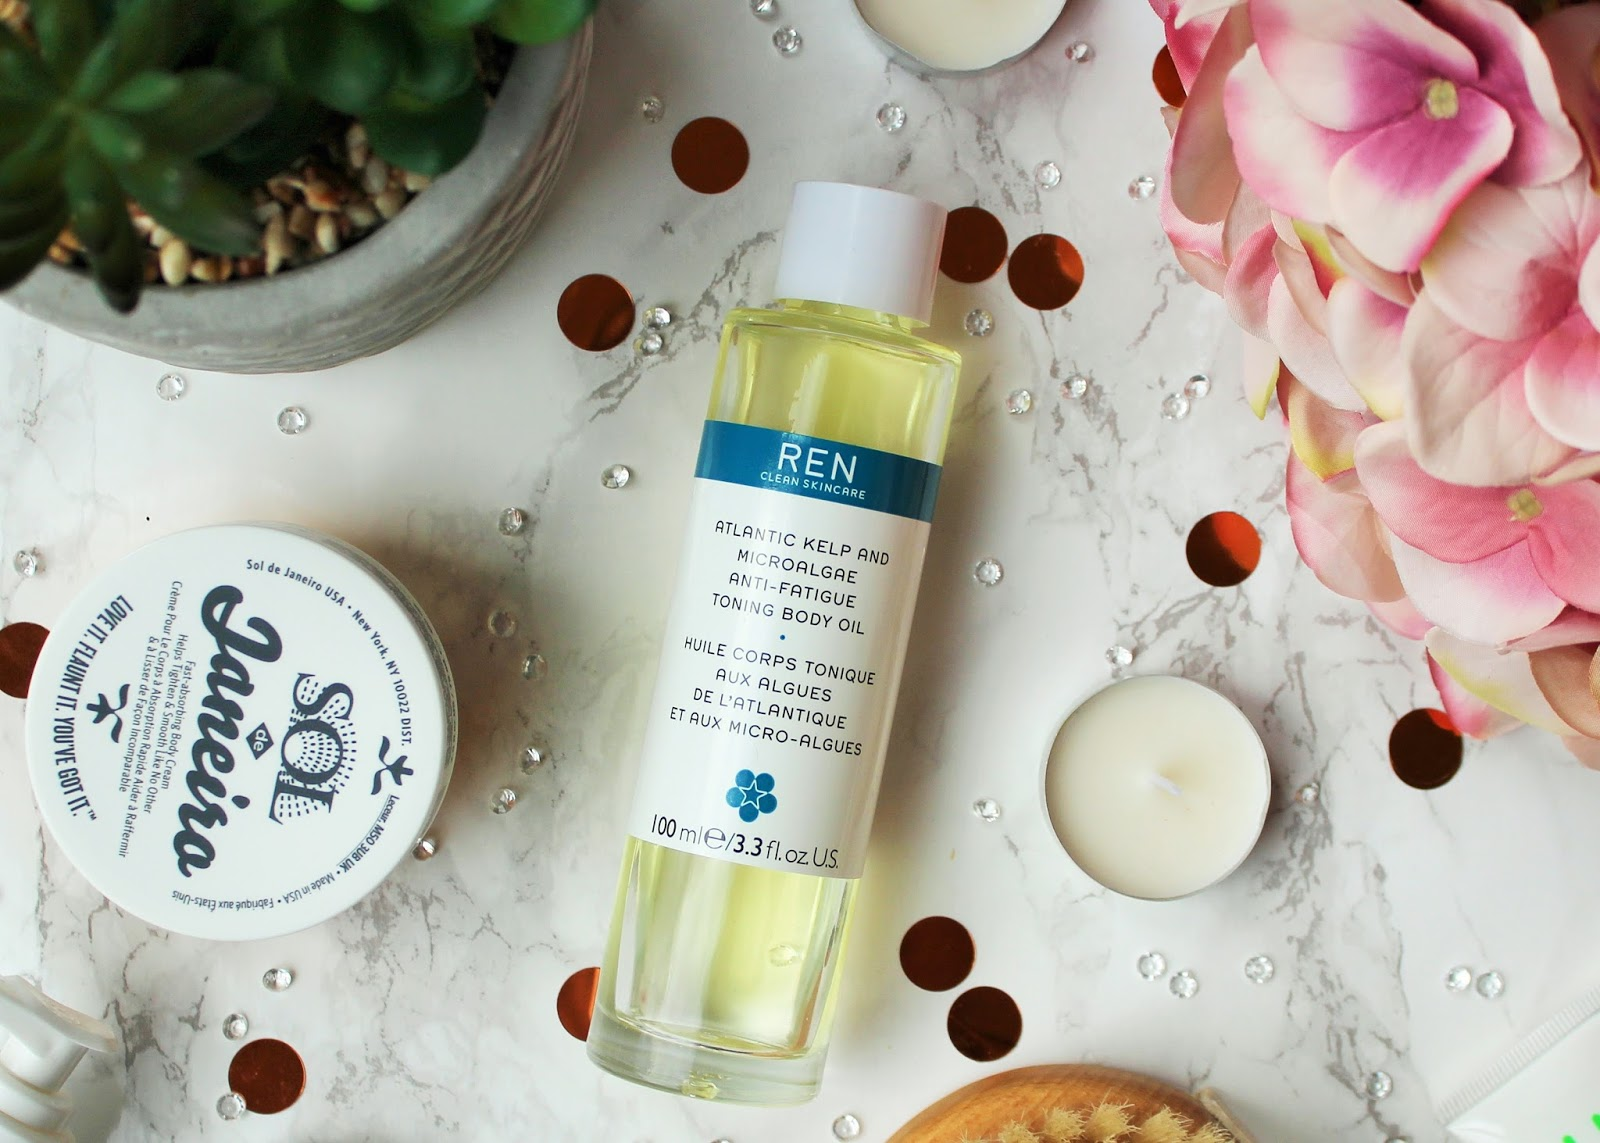 My Favourite Body Firming Products - 5 - Ren Atlantic Kelp And Microalgae Anti-Fatigue Toning Body Oil